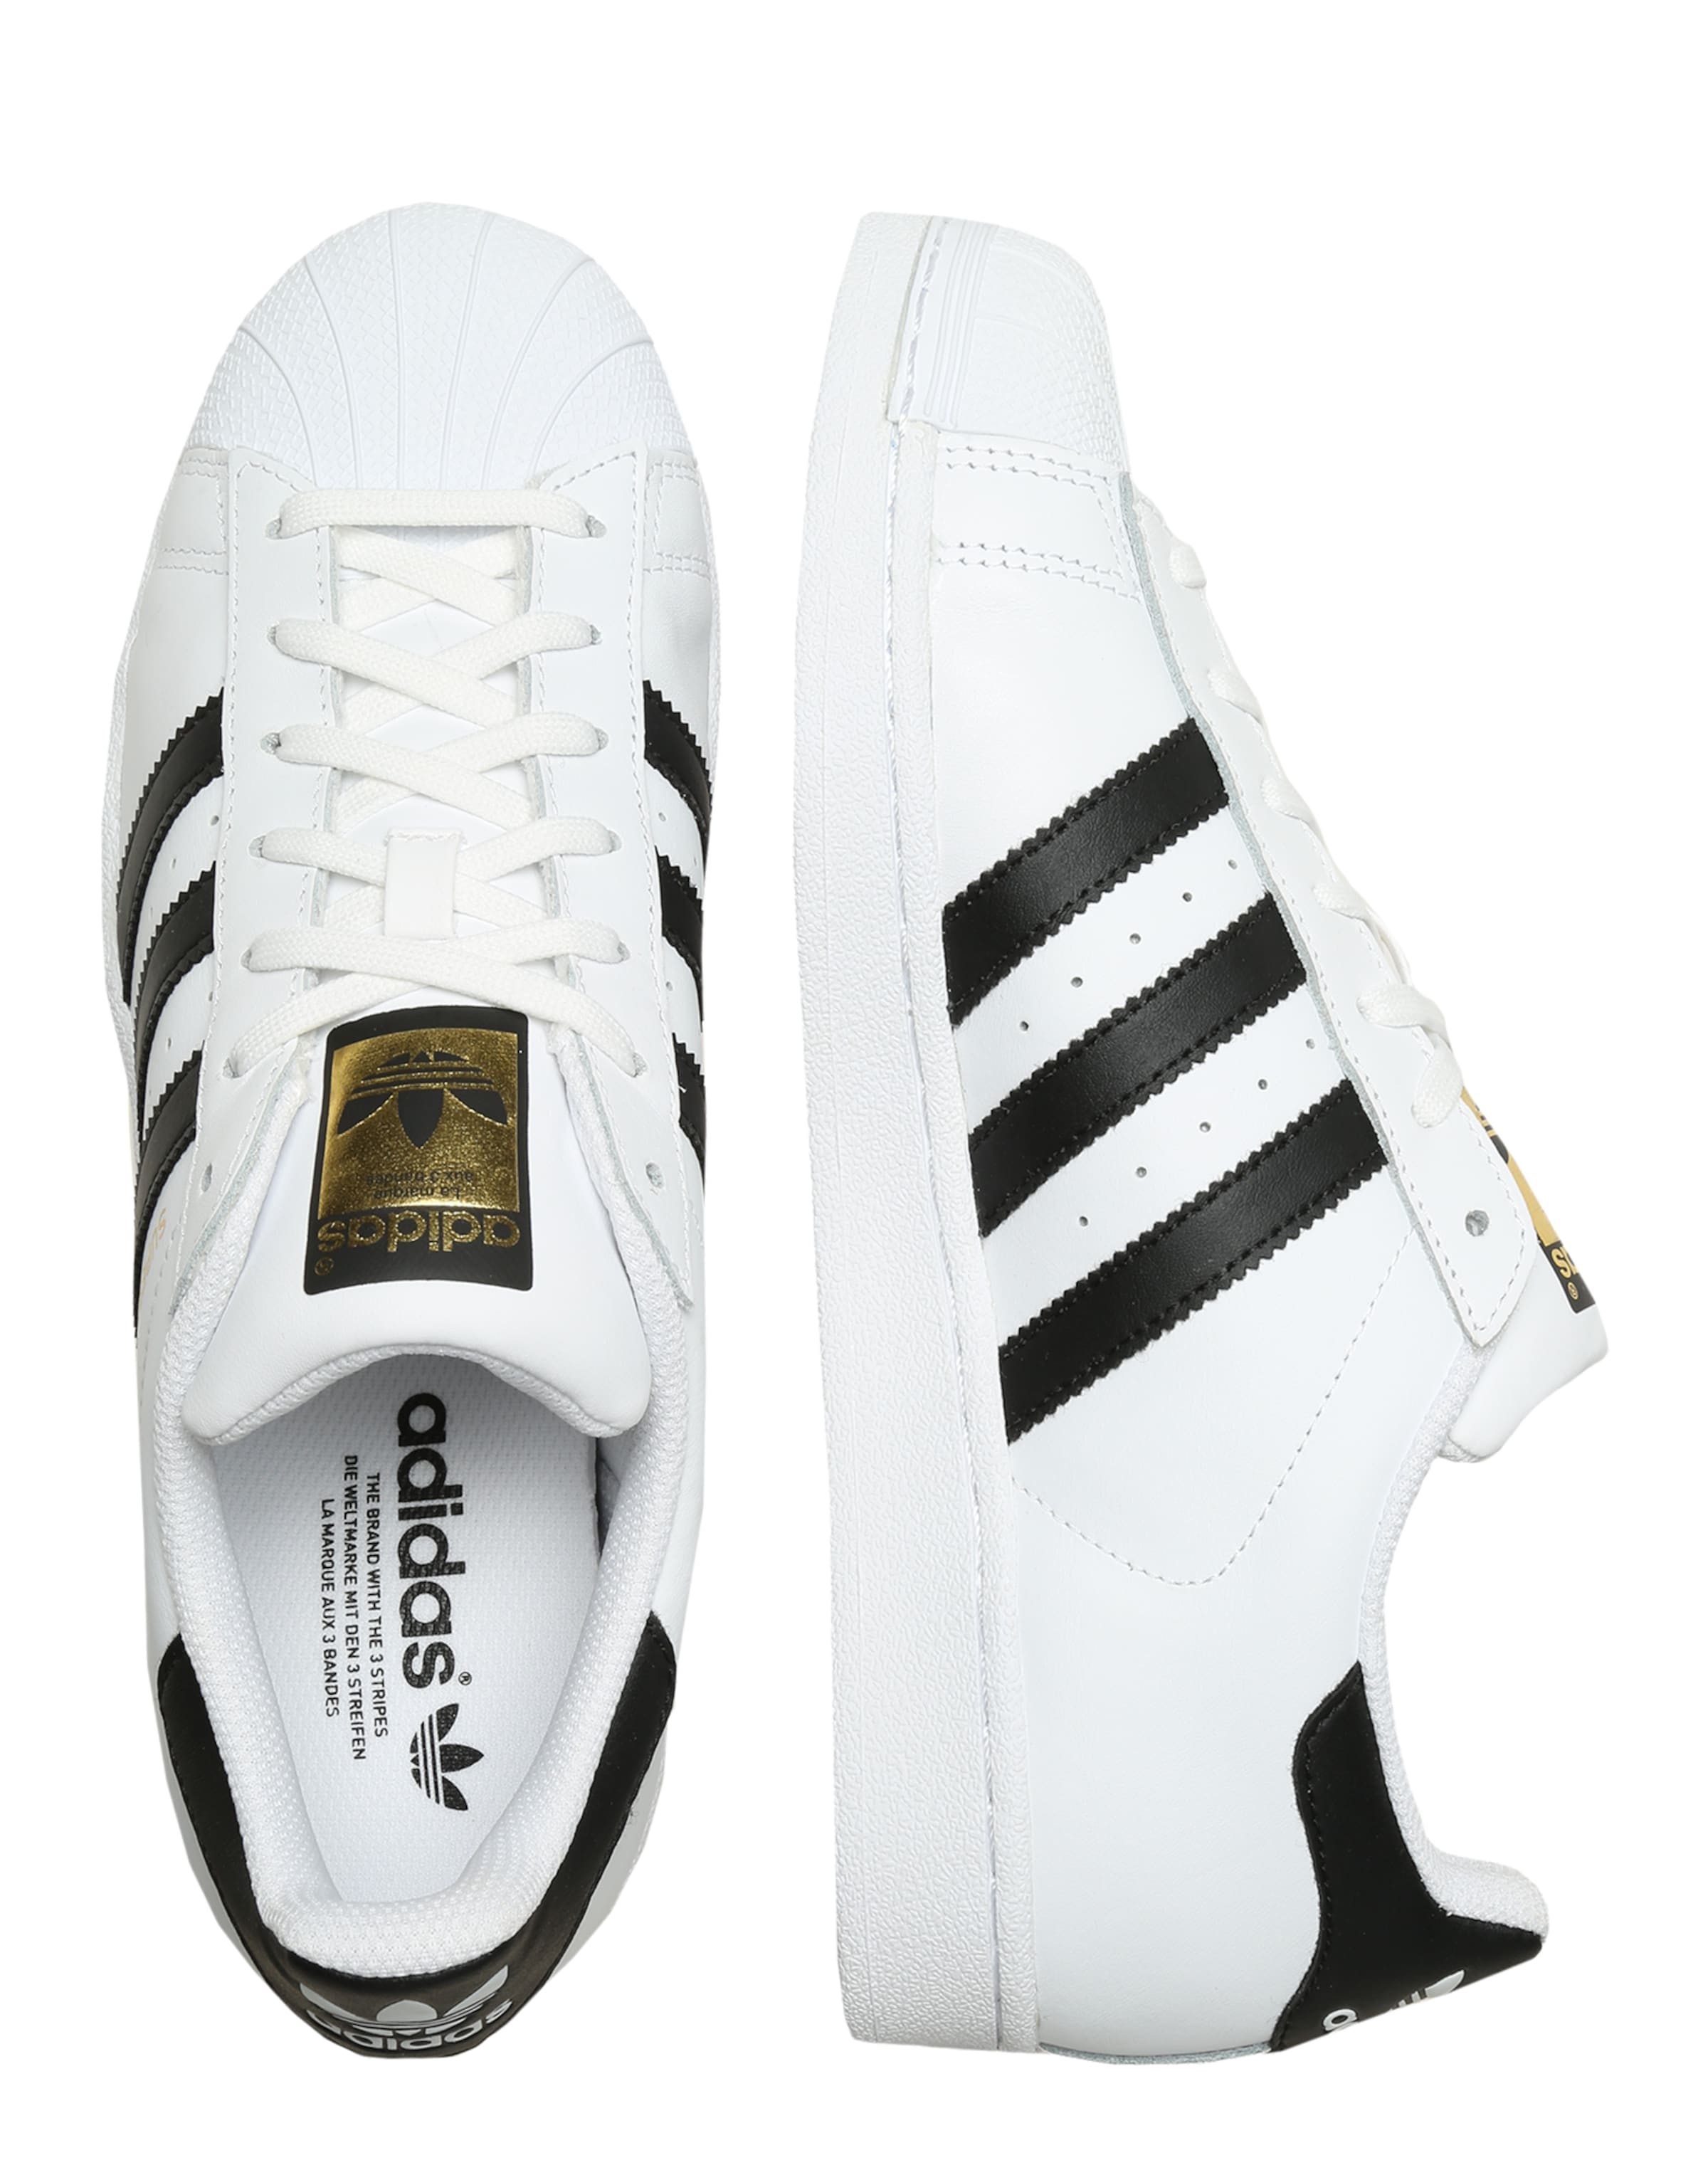 Originals In 'superstar' SchwarzWeiß Adidas Sneaker 5jR3L4Aq